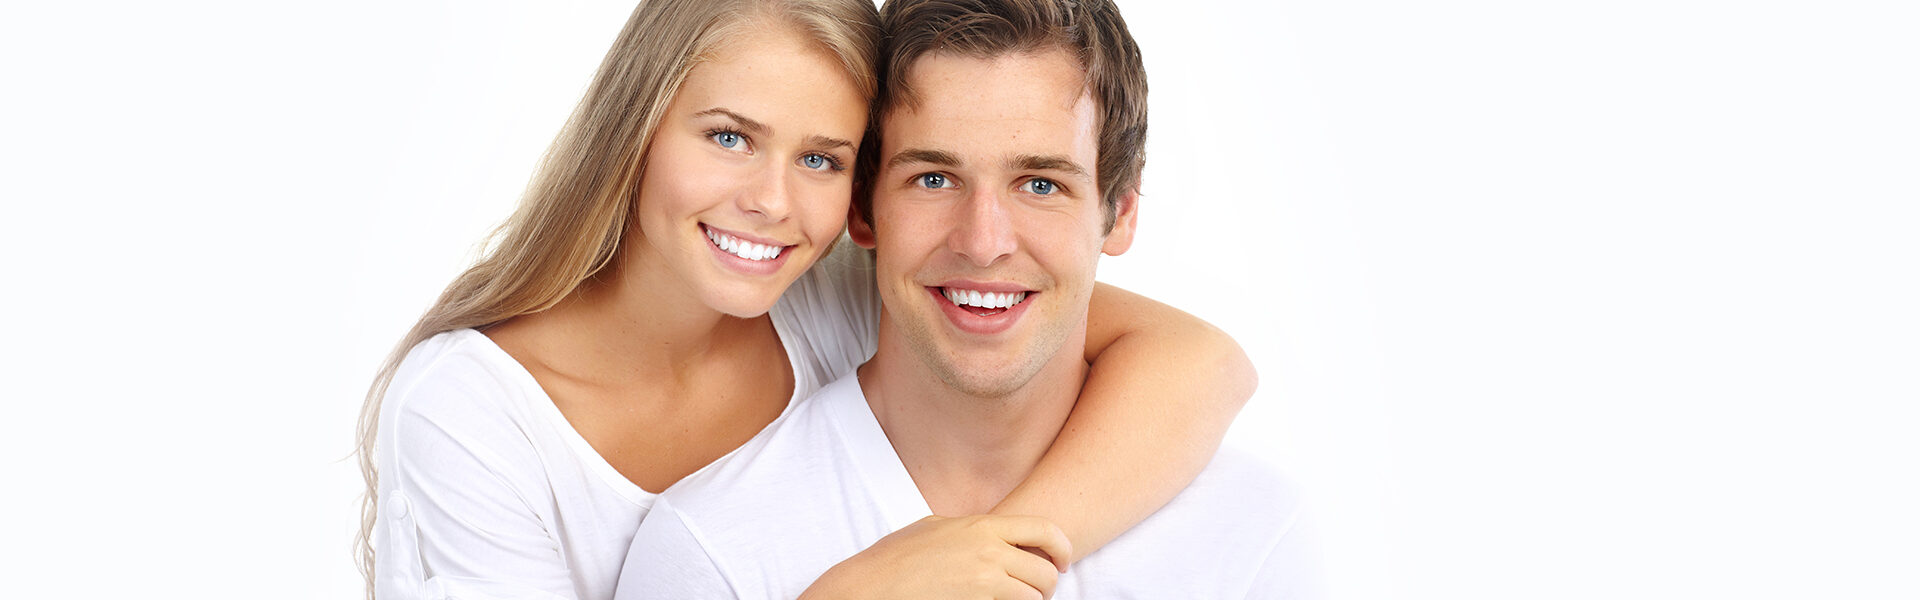 What to Expect with Your Teeth Whitening Treatment